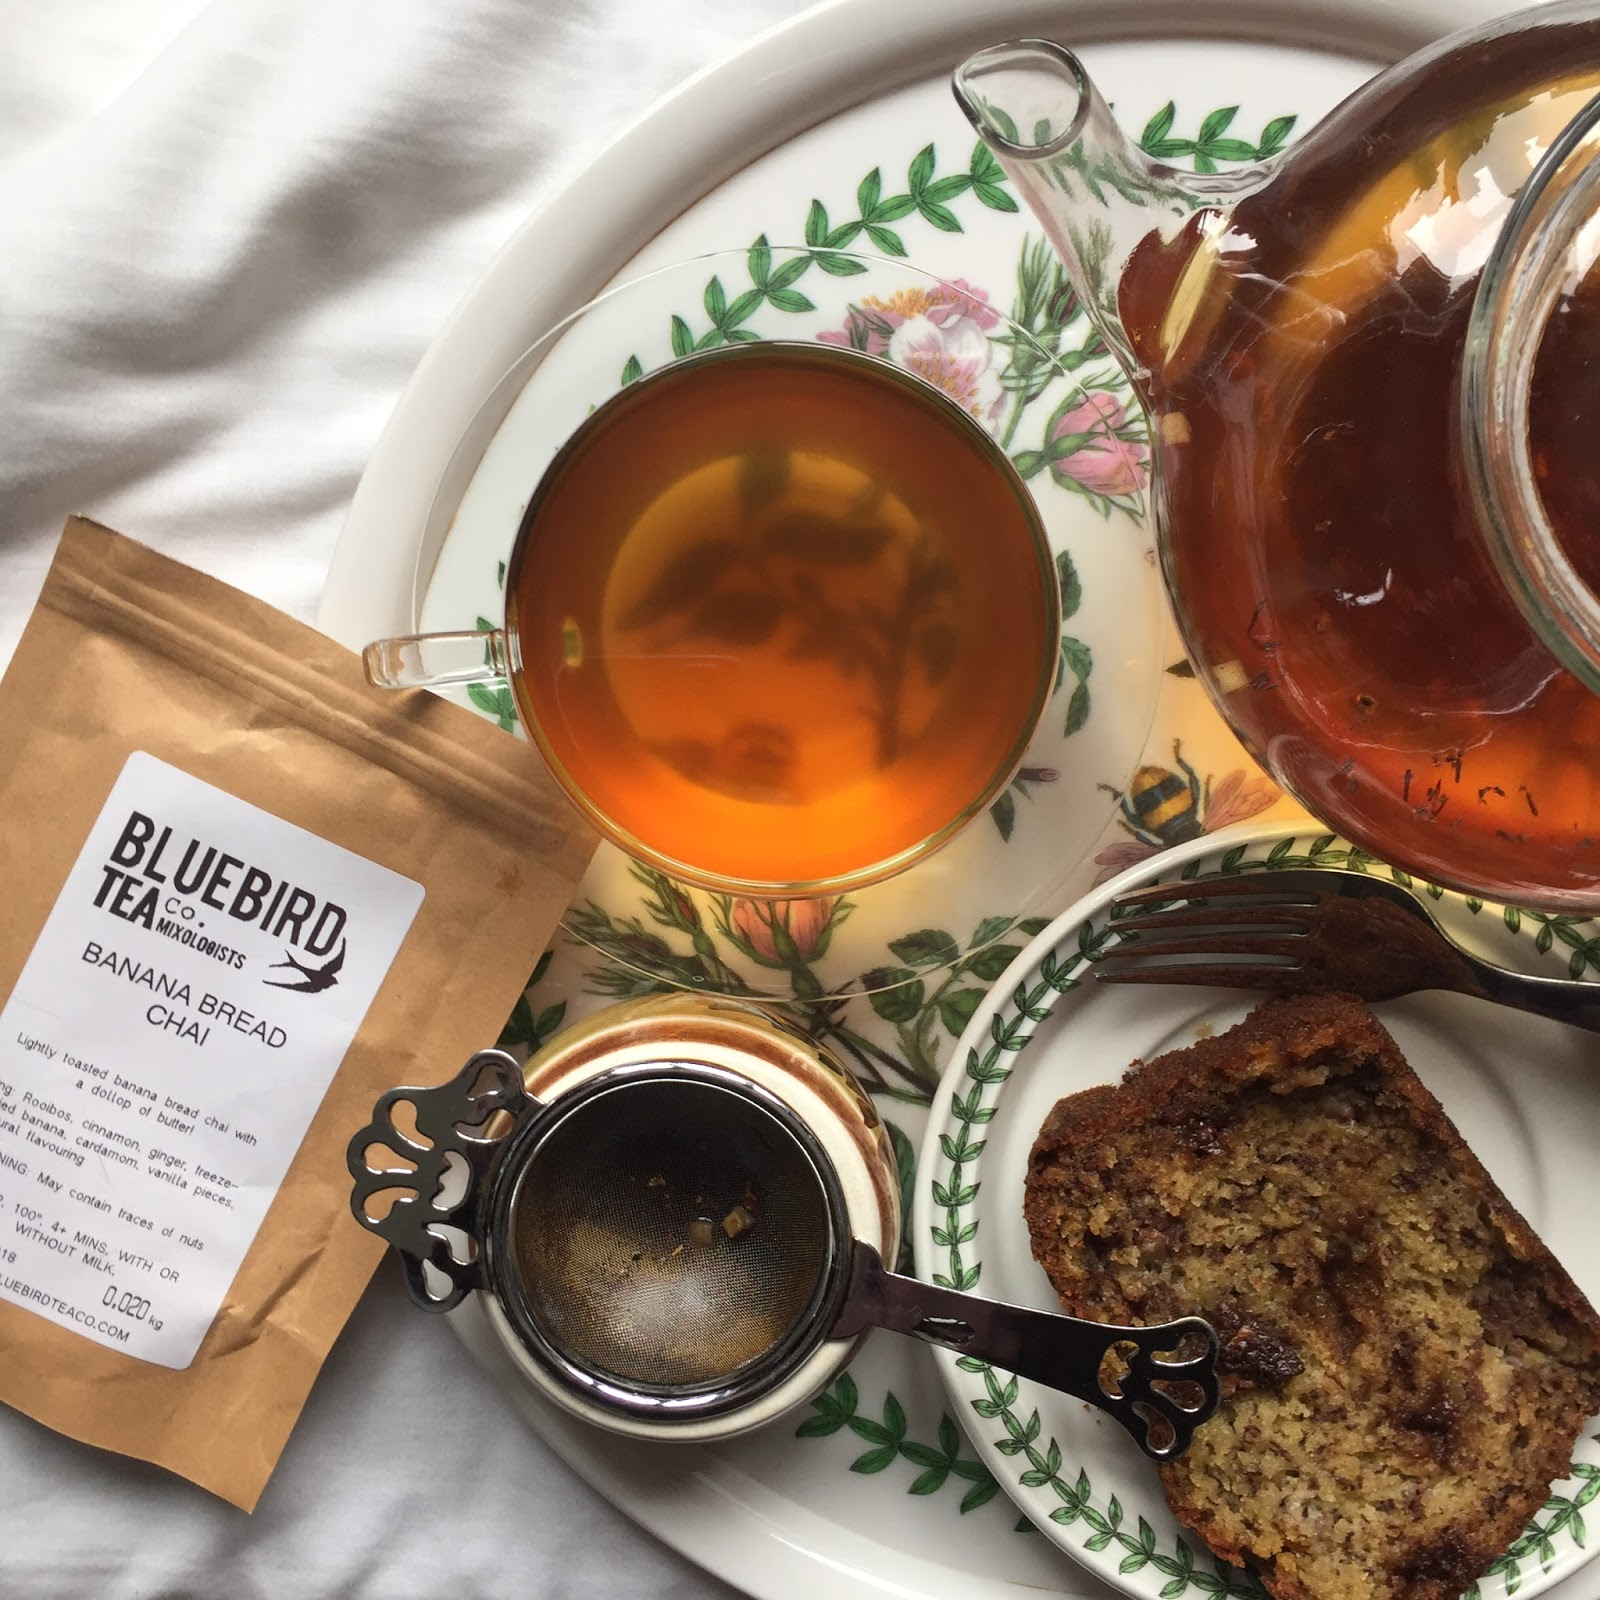 Bluebird tea co. banana bread chai and banana bread